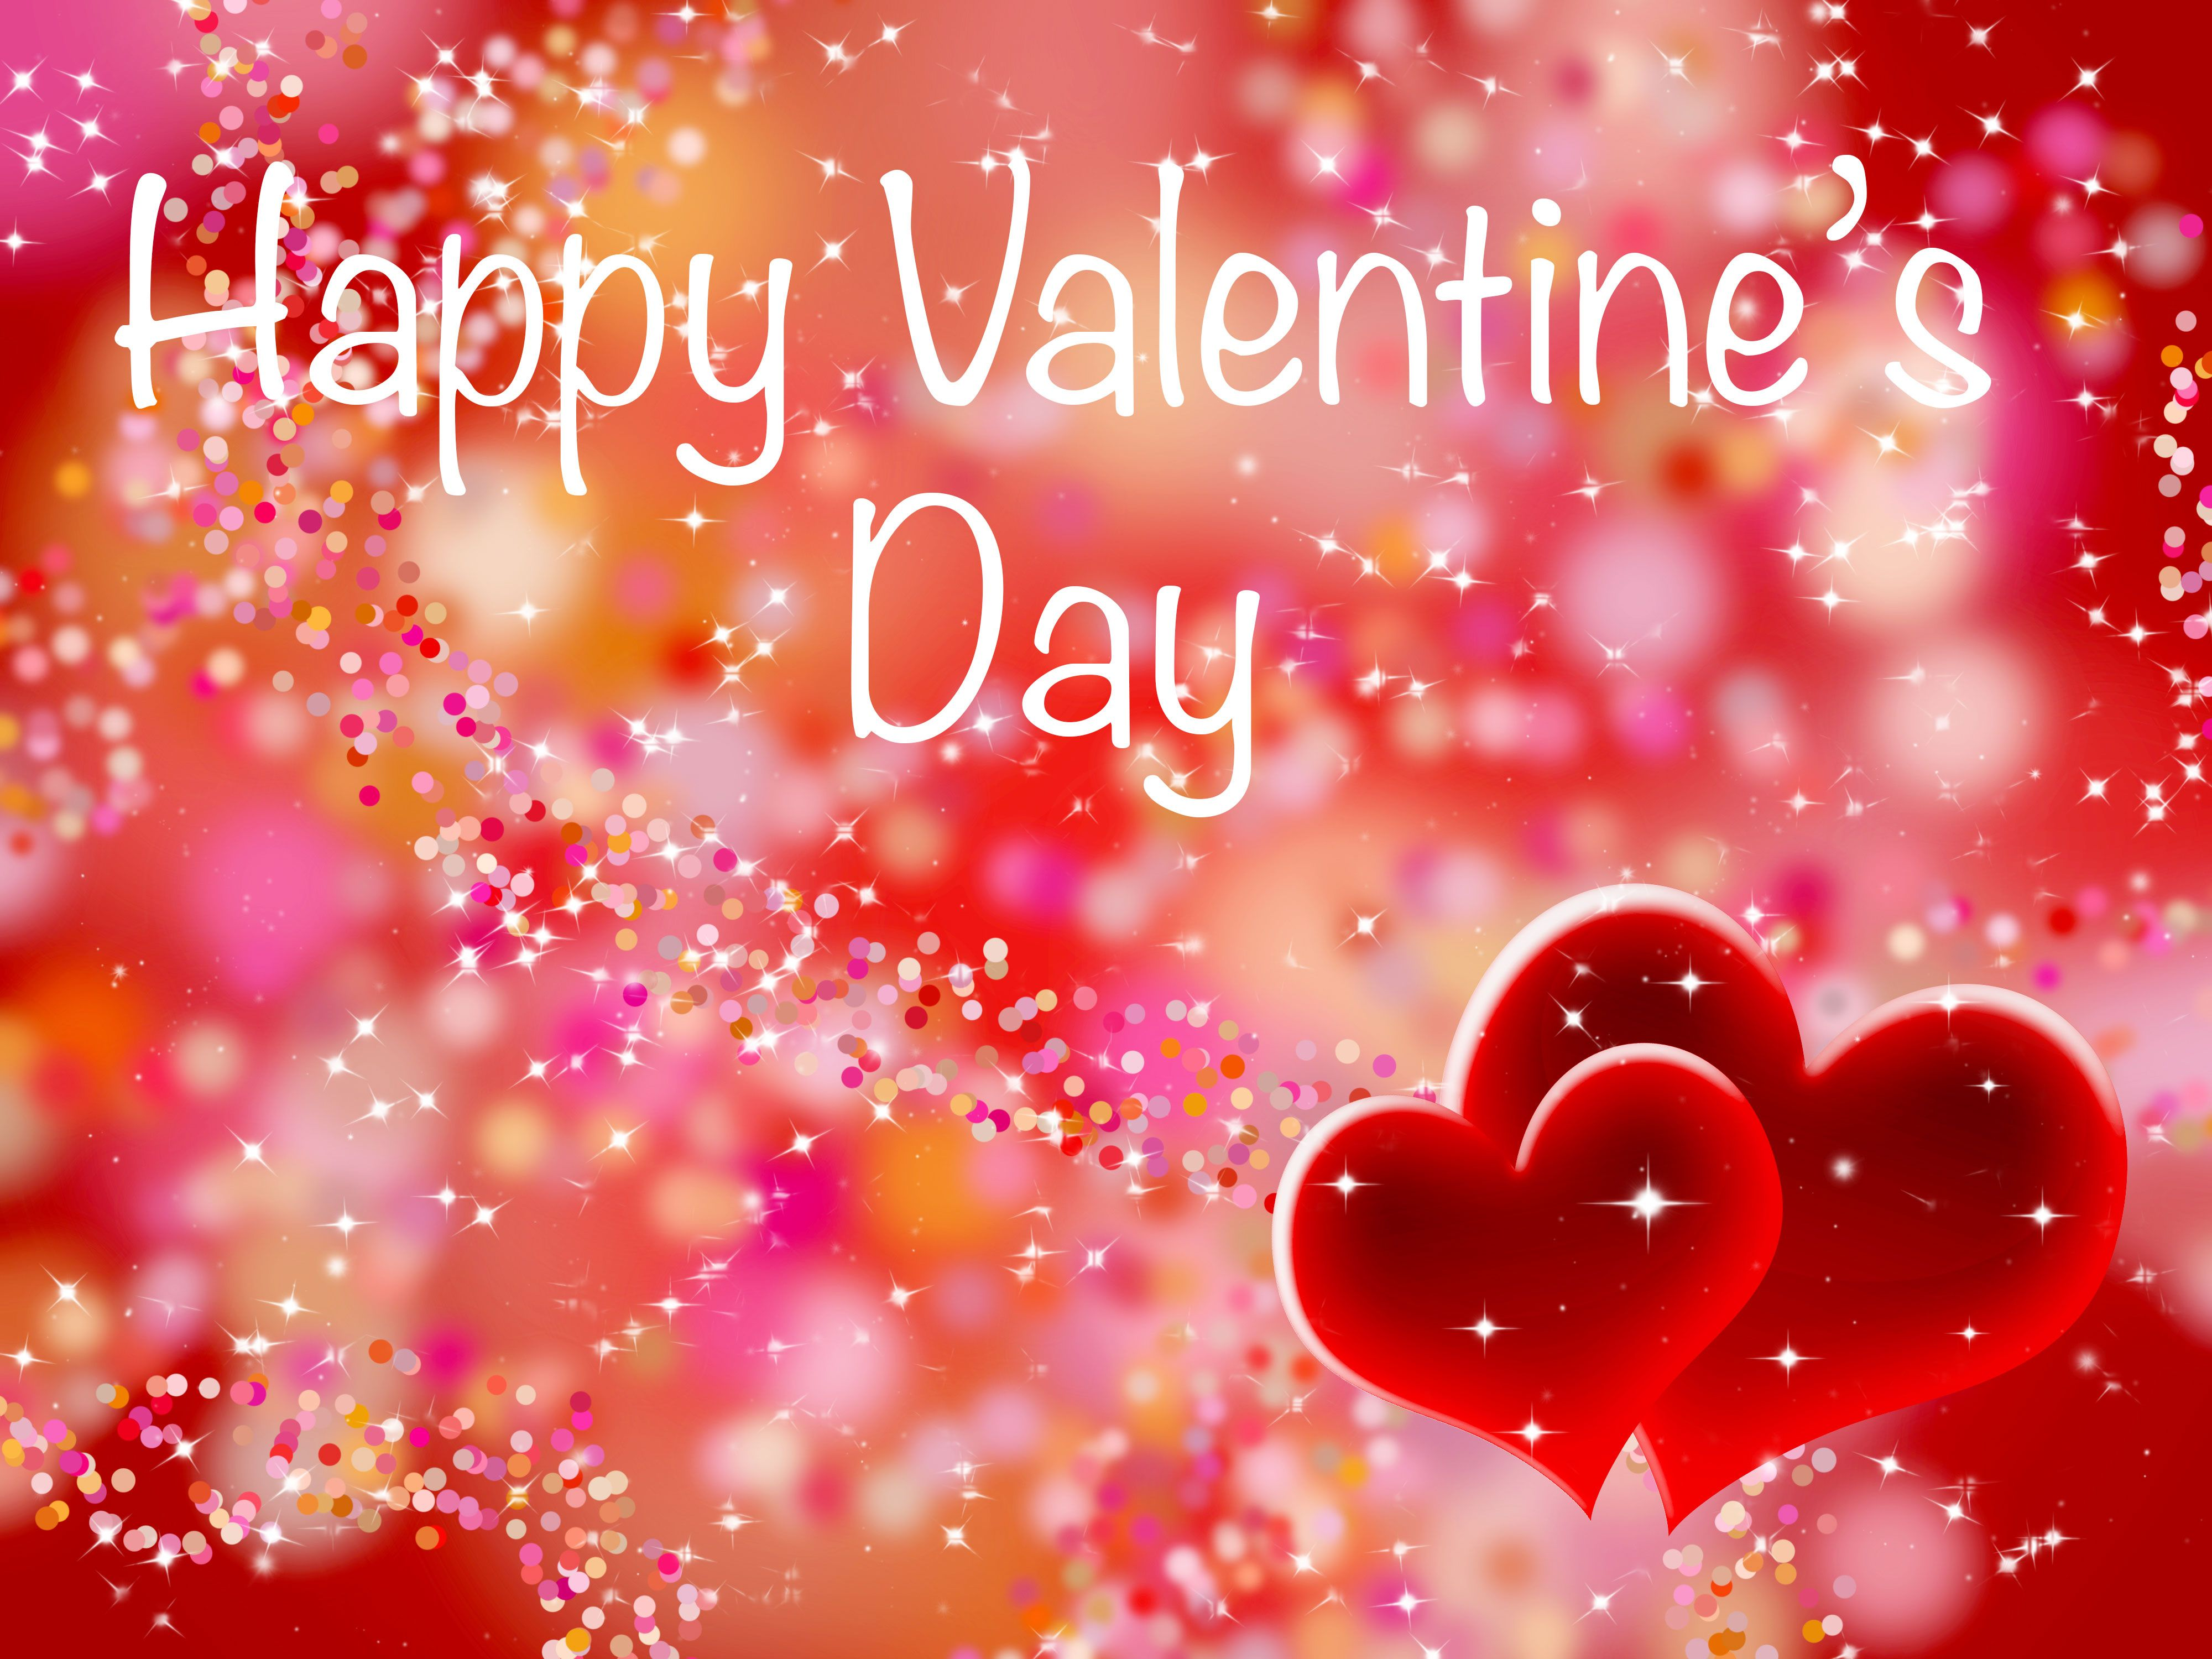 4000x3000 518 Valentine's Day HD Wallpapers | Background Images ...